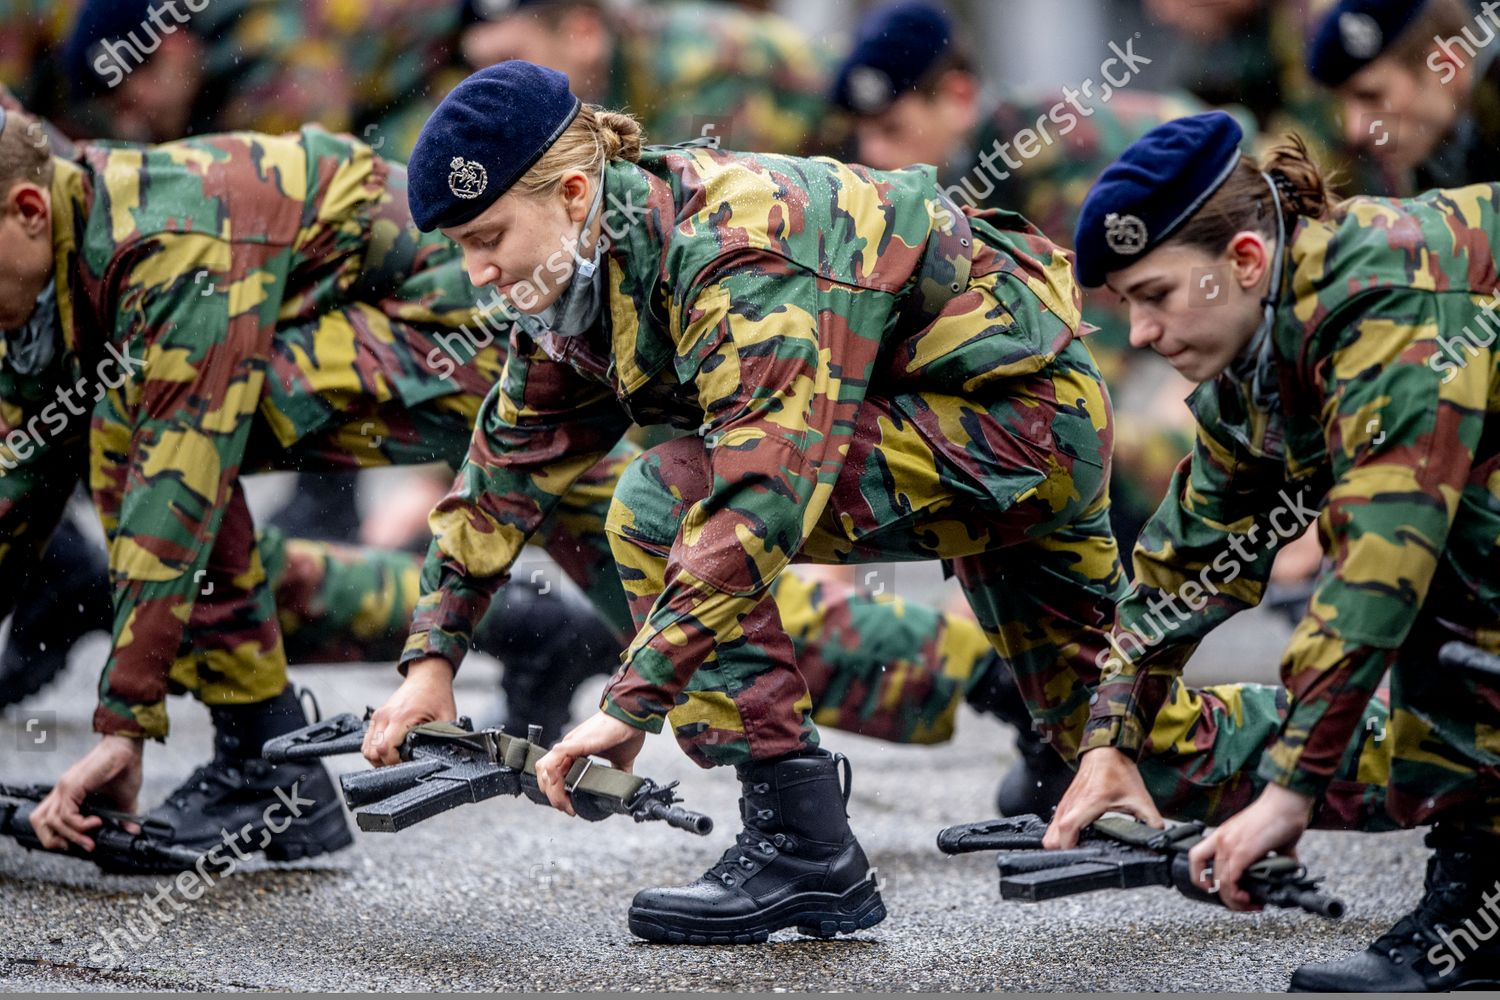 belgian-royals-attend-ceremony-for-the-presentation-of-the-blue-berets-royal-military-academy-erm-brussels-belgium-shutterstock-editorial-10790505u.jpg